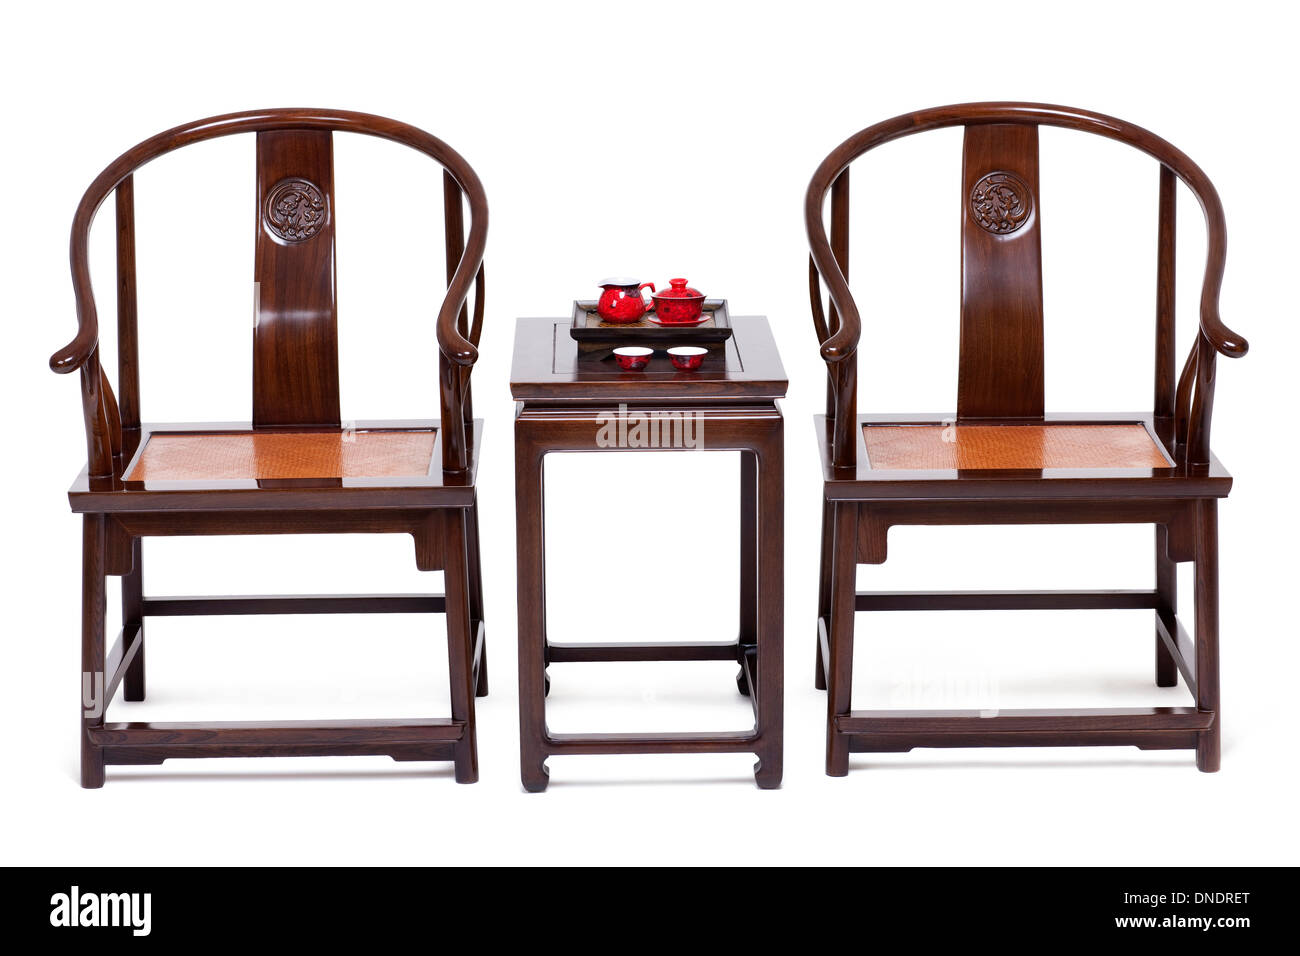 Charming Chinese Ming Style Furniture